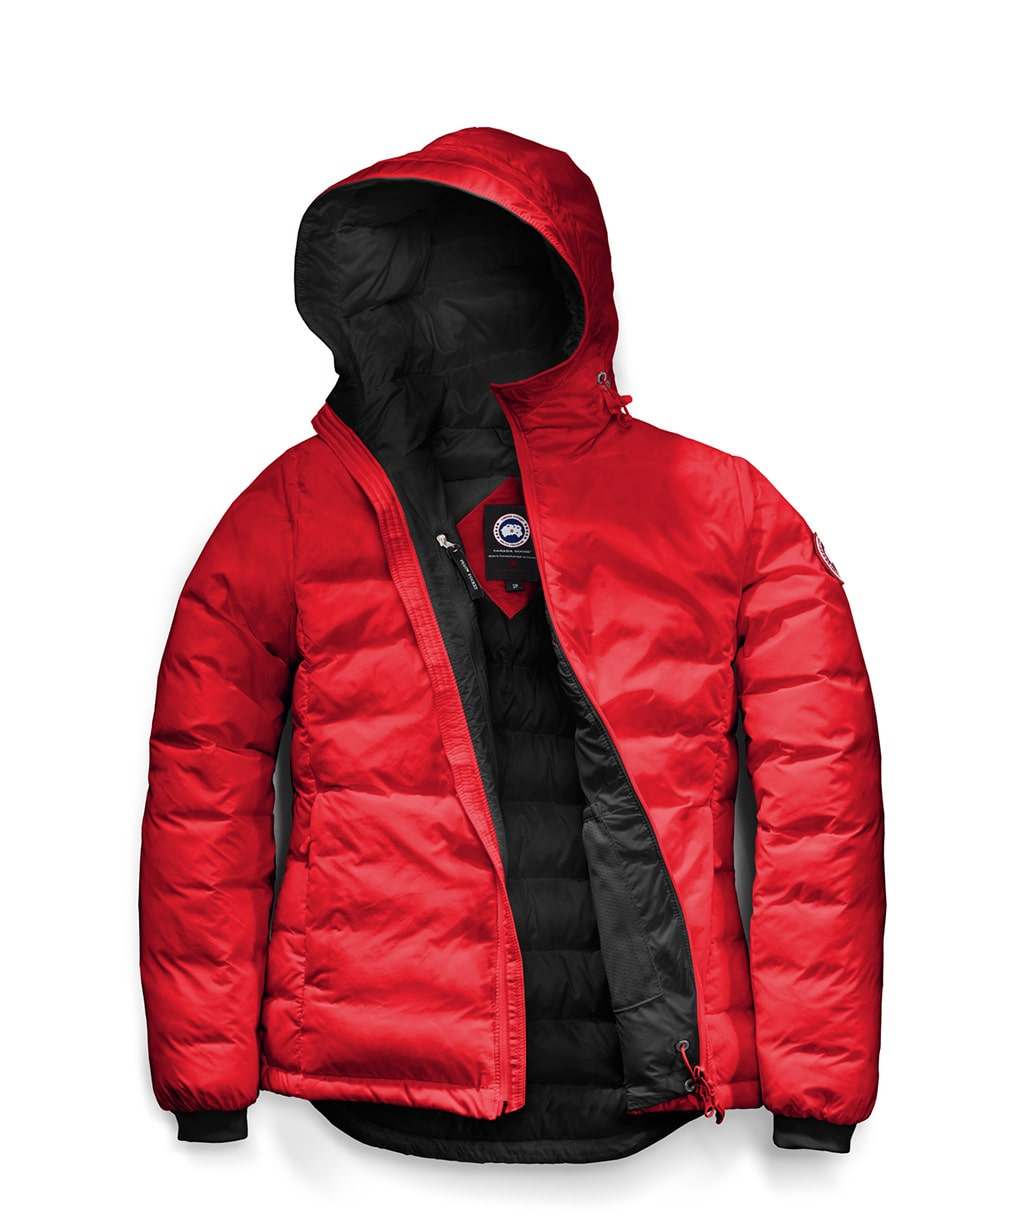 CAMP HOODY FUSION FIT